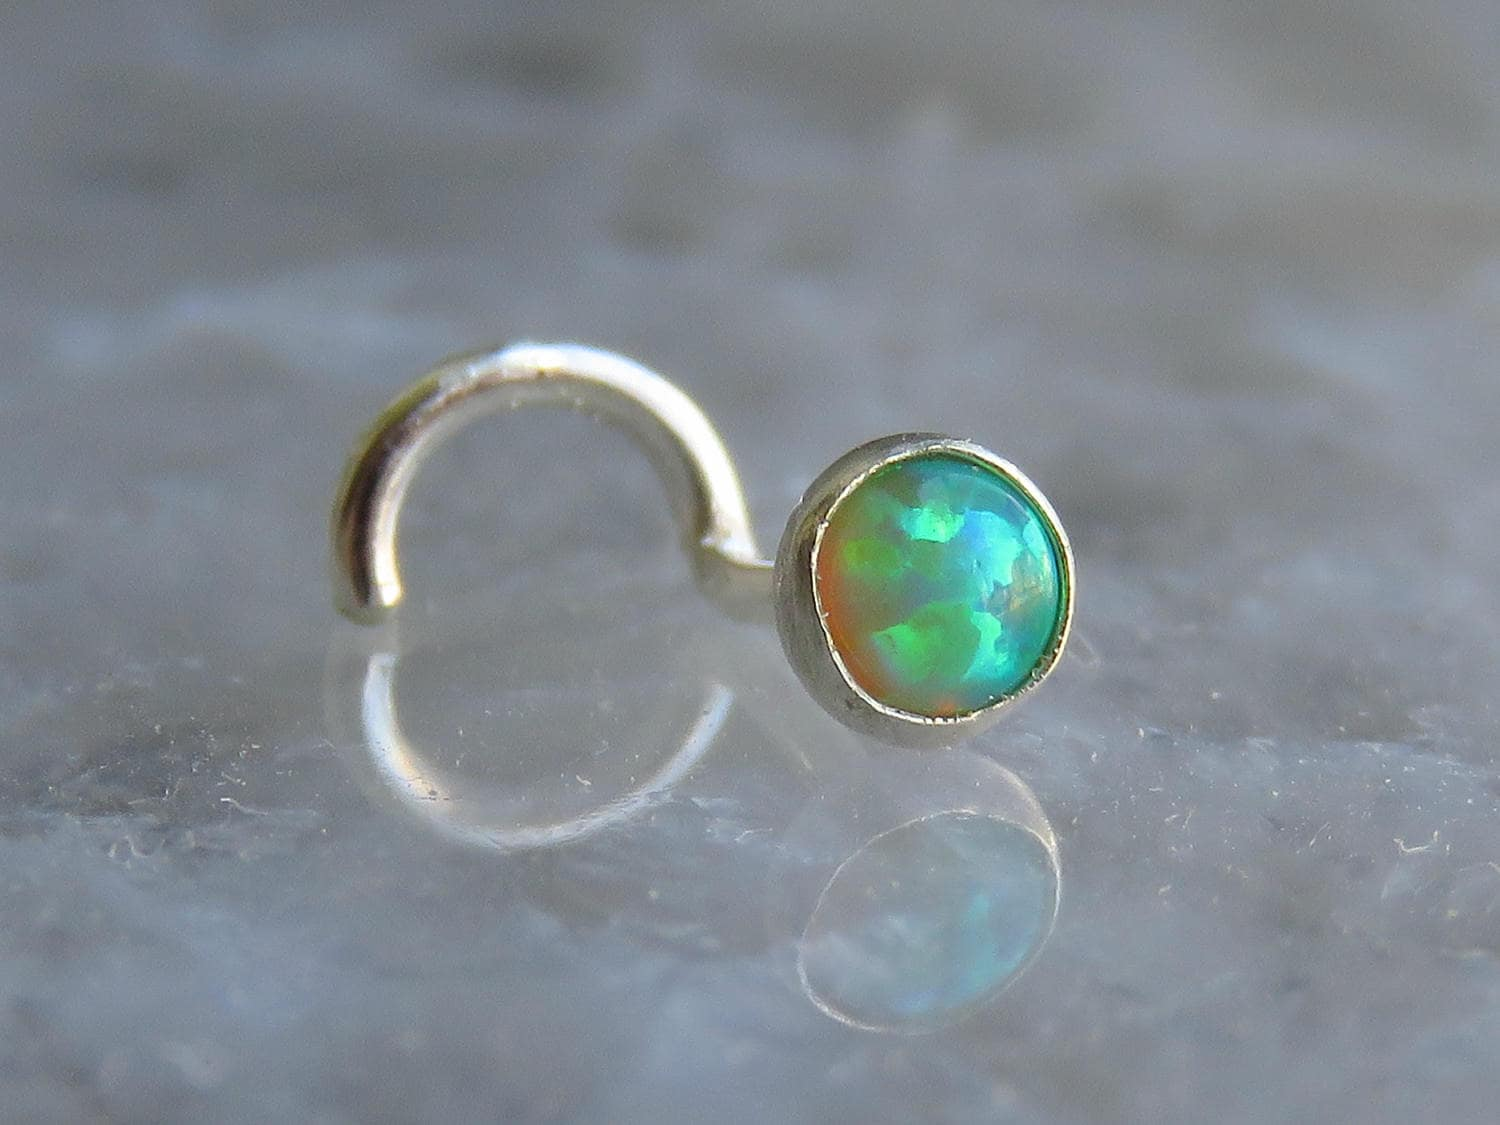 nose stud 18g gemstone nose stud green opal nose stud